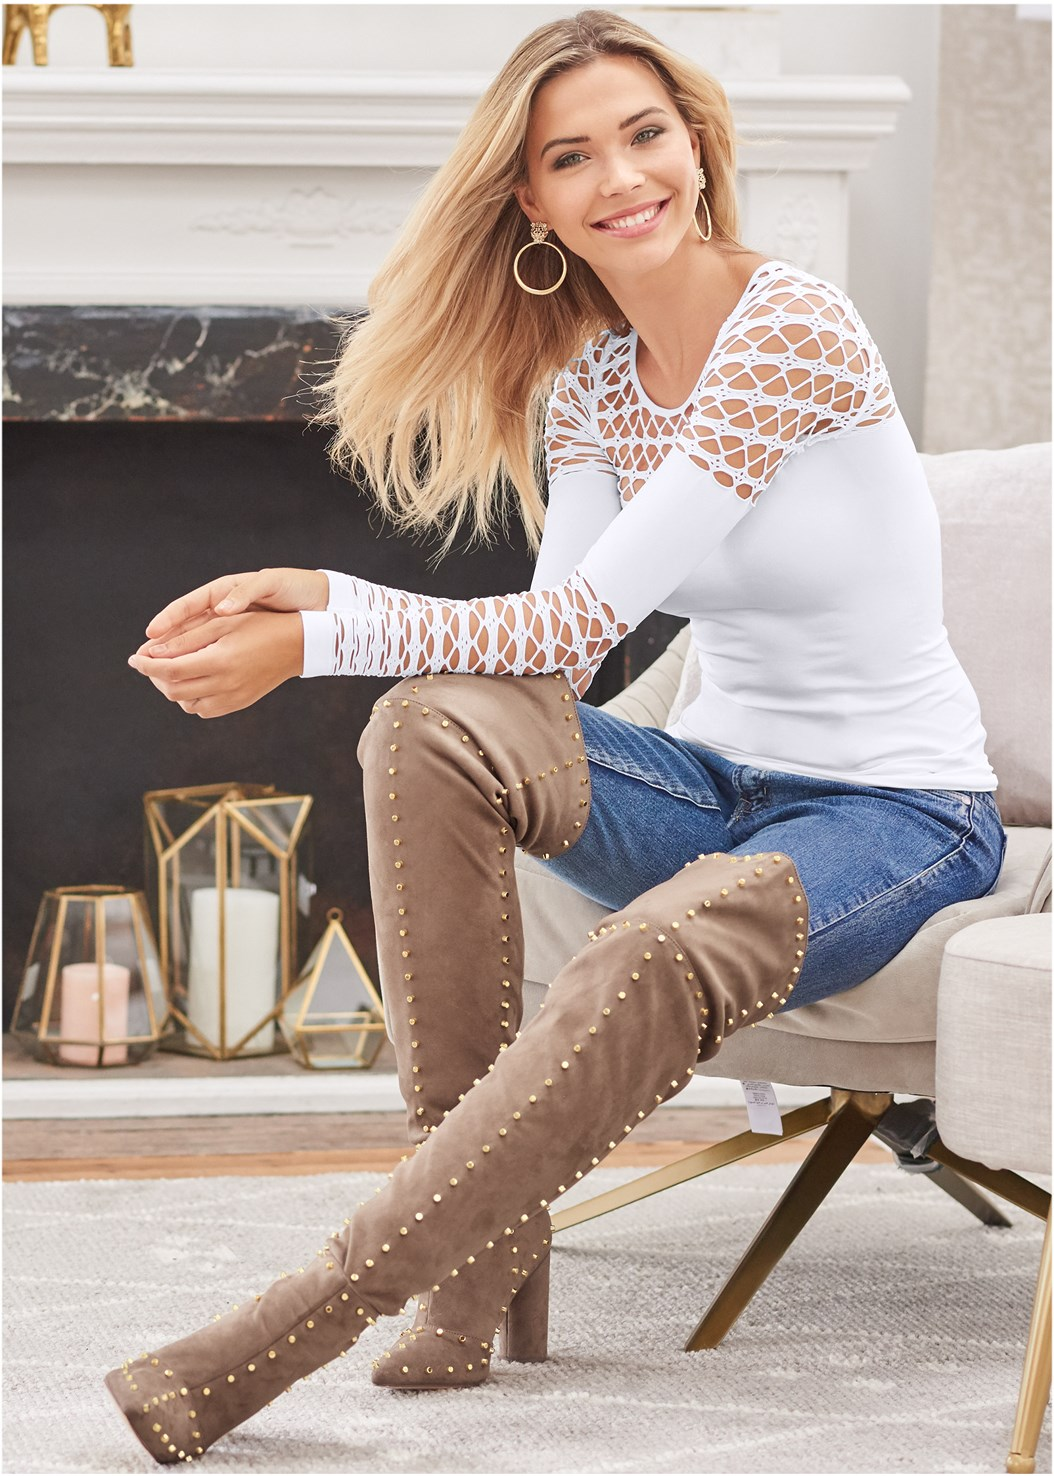 Seamless Fitted Cut Out Top,Mid Rise Slimming Stretch Jeggings,Mid Rise Color Skinny Jeans,Reversible Jeans,Faux Leather Pants,Smooth Longline Push Up Bra,Studded Over The Knee Boots,Tassel Hoop Earrings,Rhinestone Fringe Earrings,Crisscross Choker